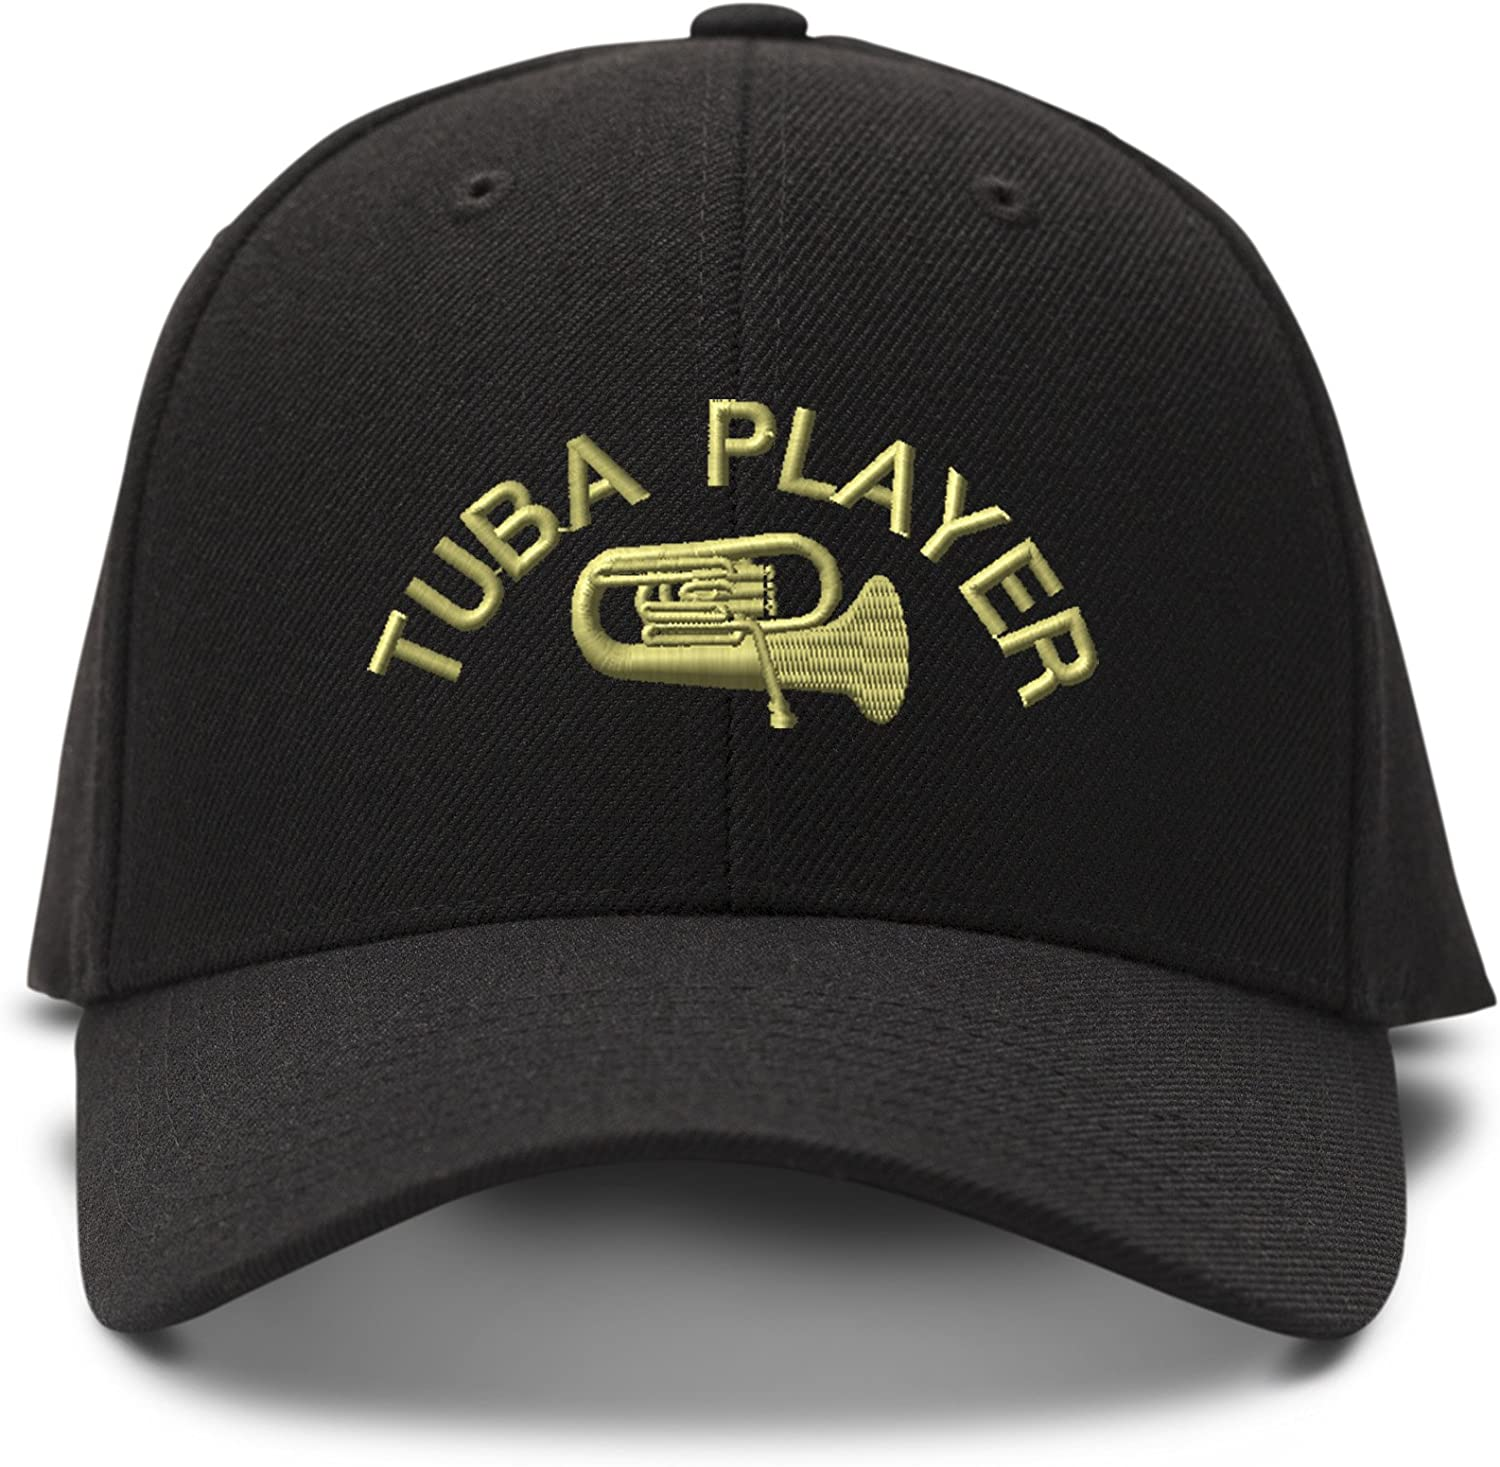 Speedy Pros Tuba Player Embroidery Adjustable Structured Baseball Hat